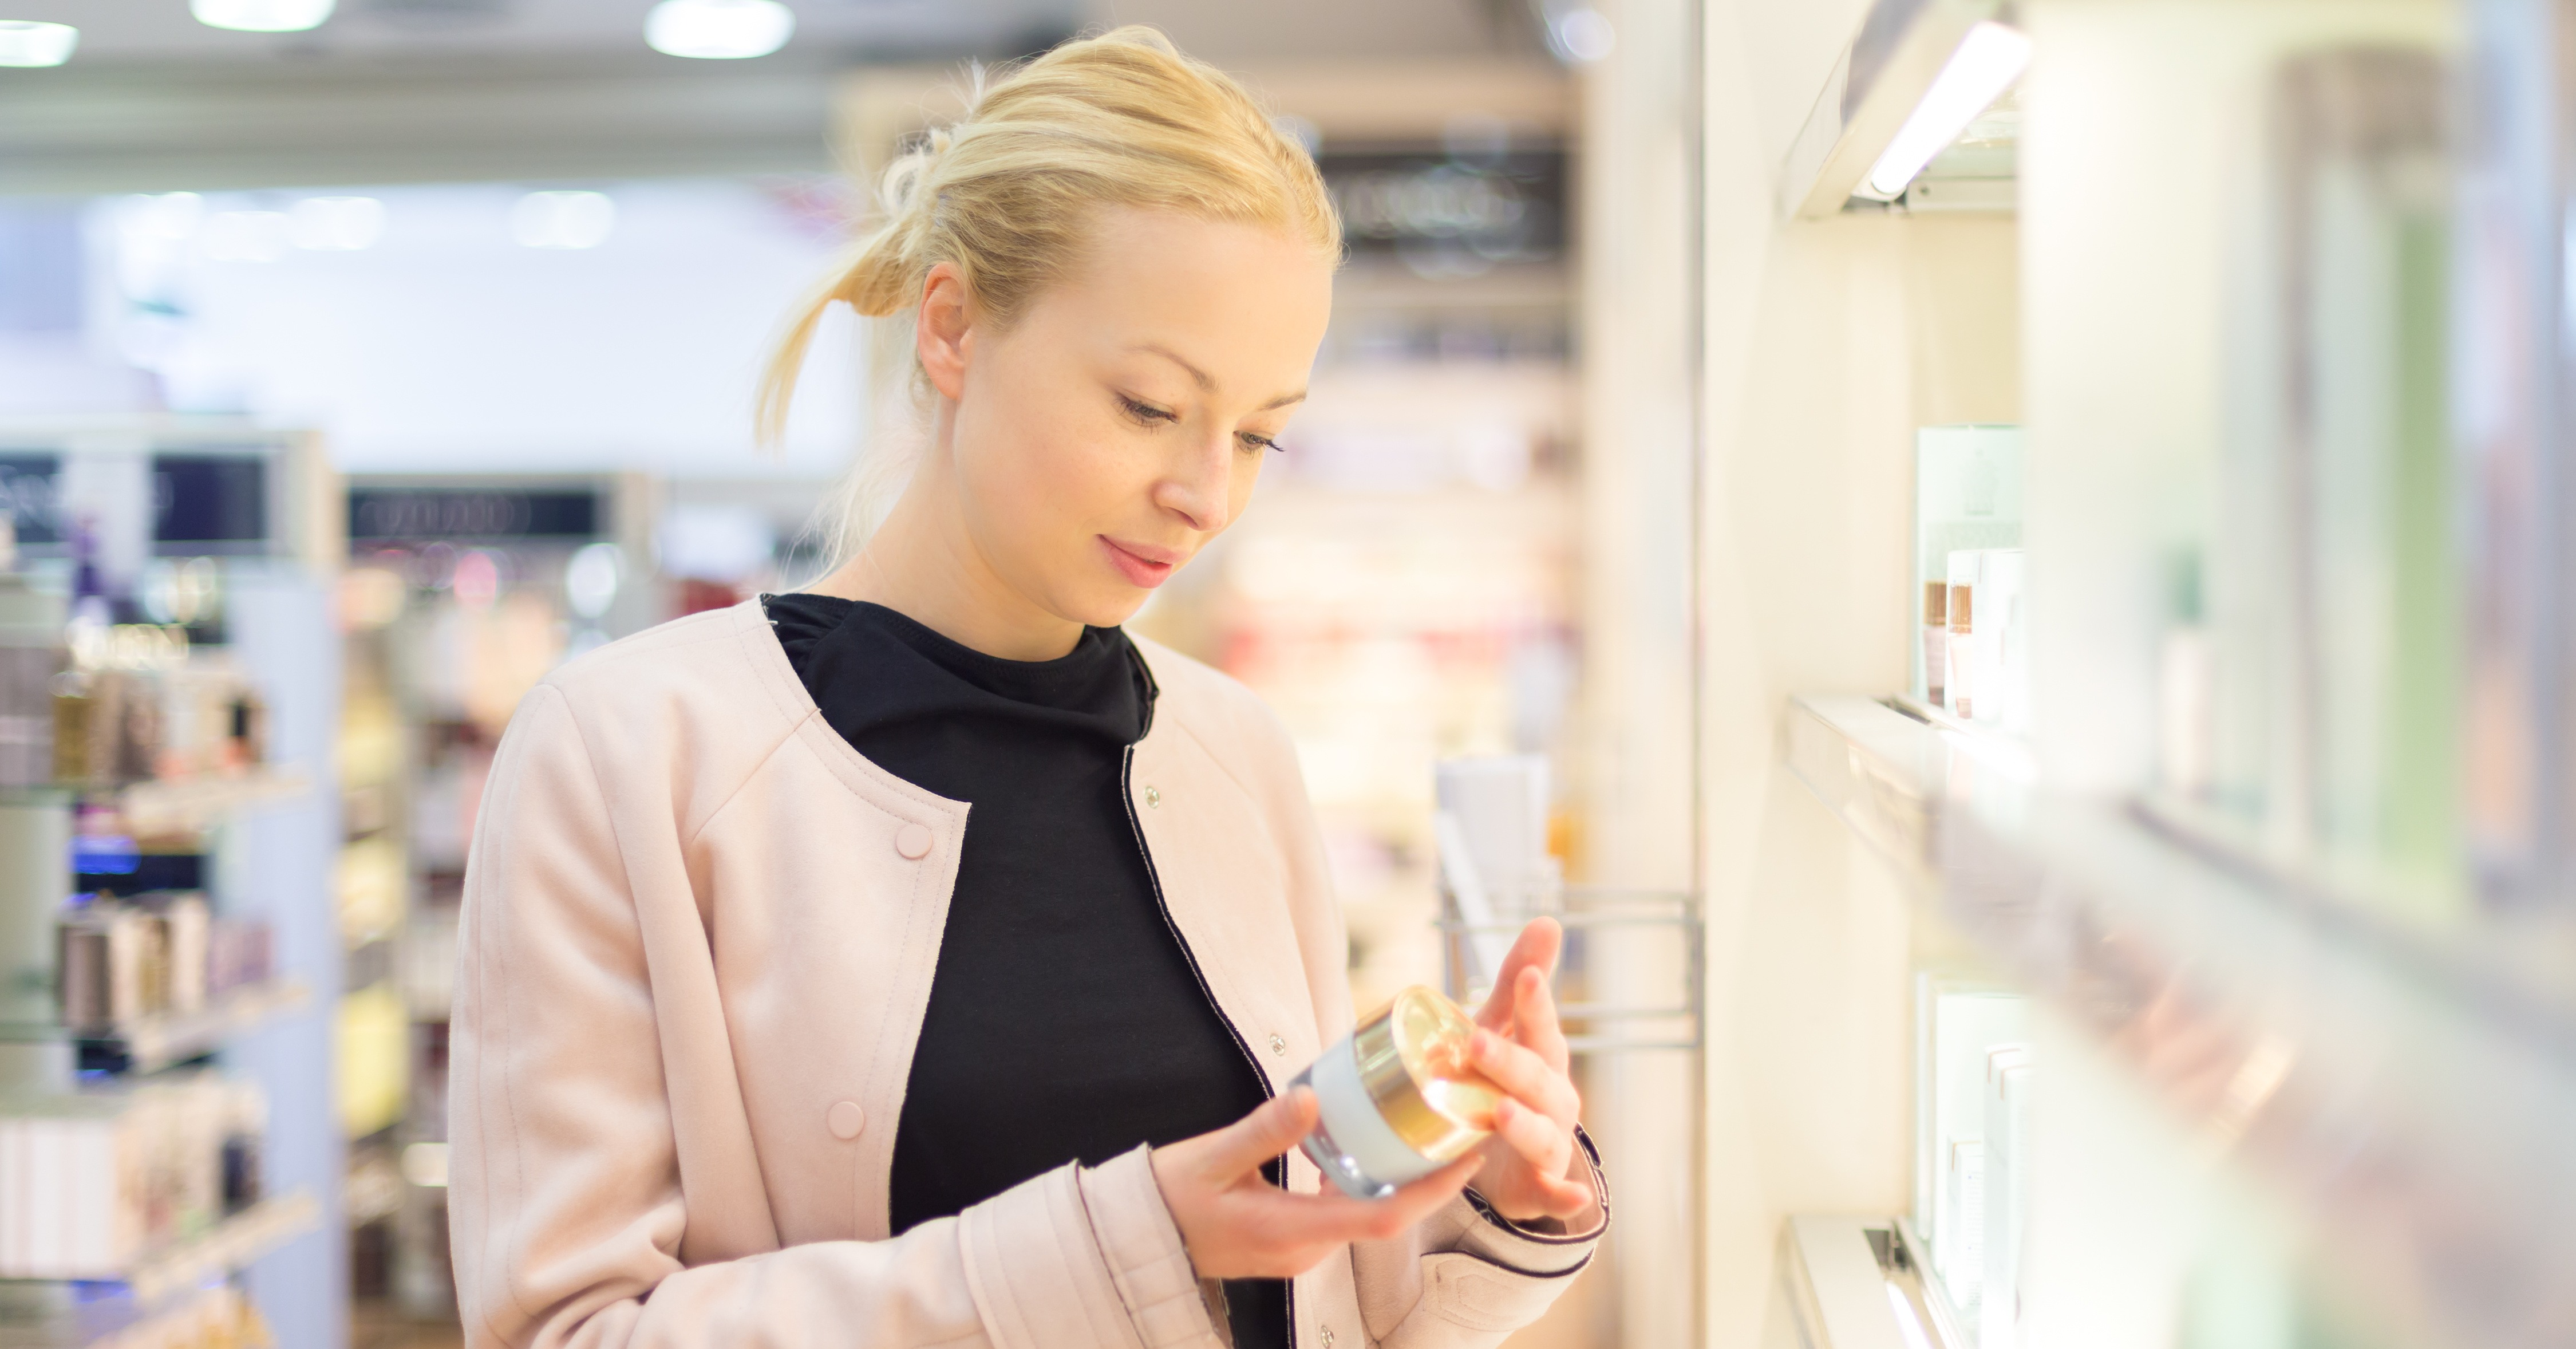 How One Retailer is Thriving by Innovating Around Its Customers